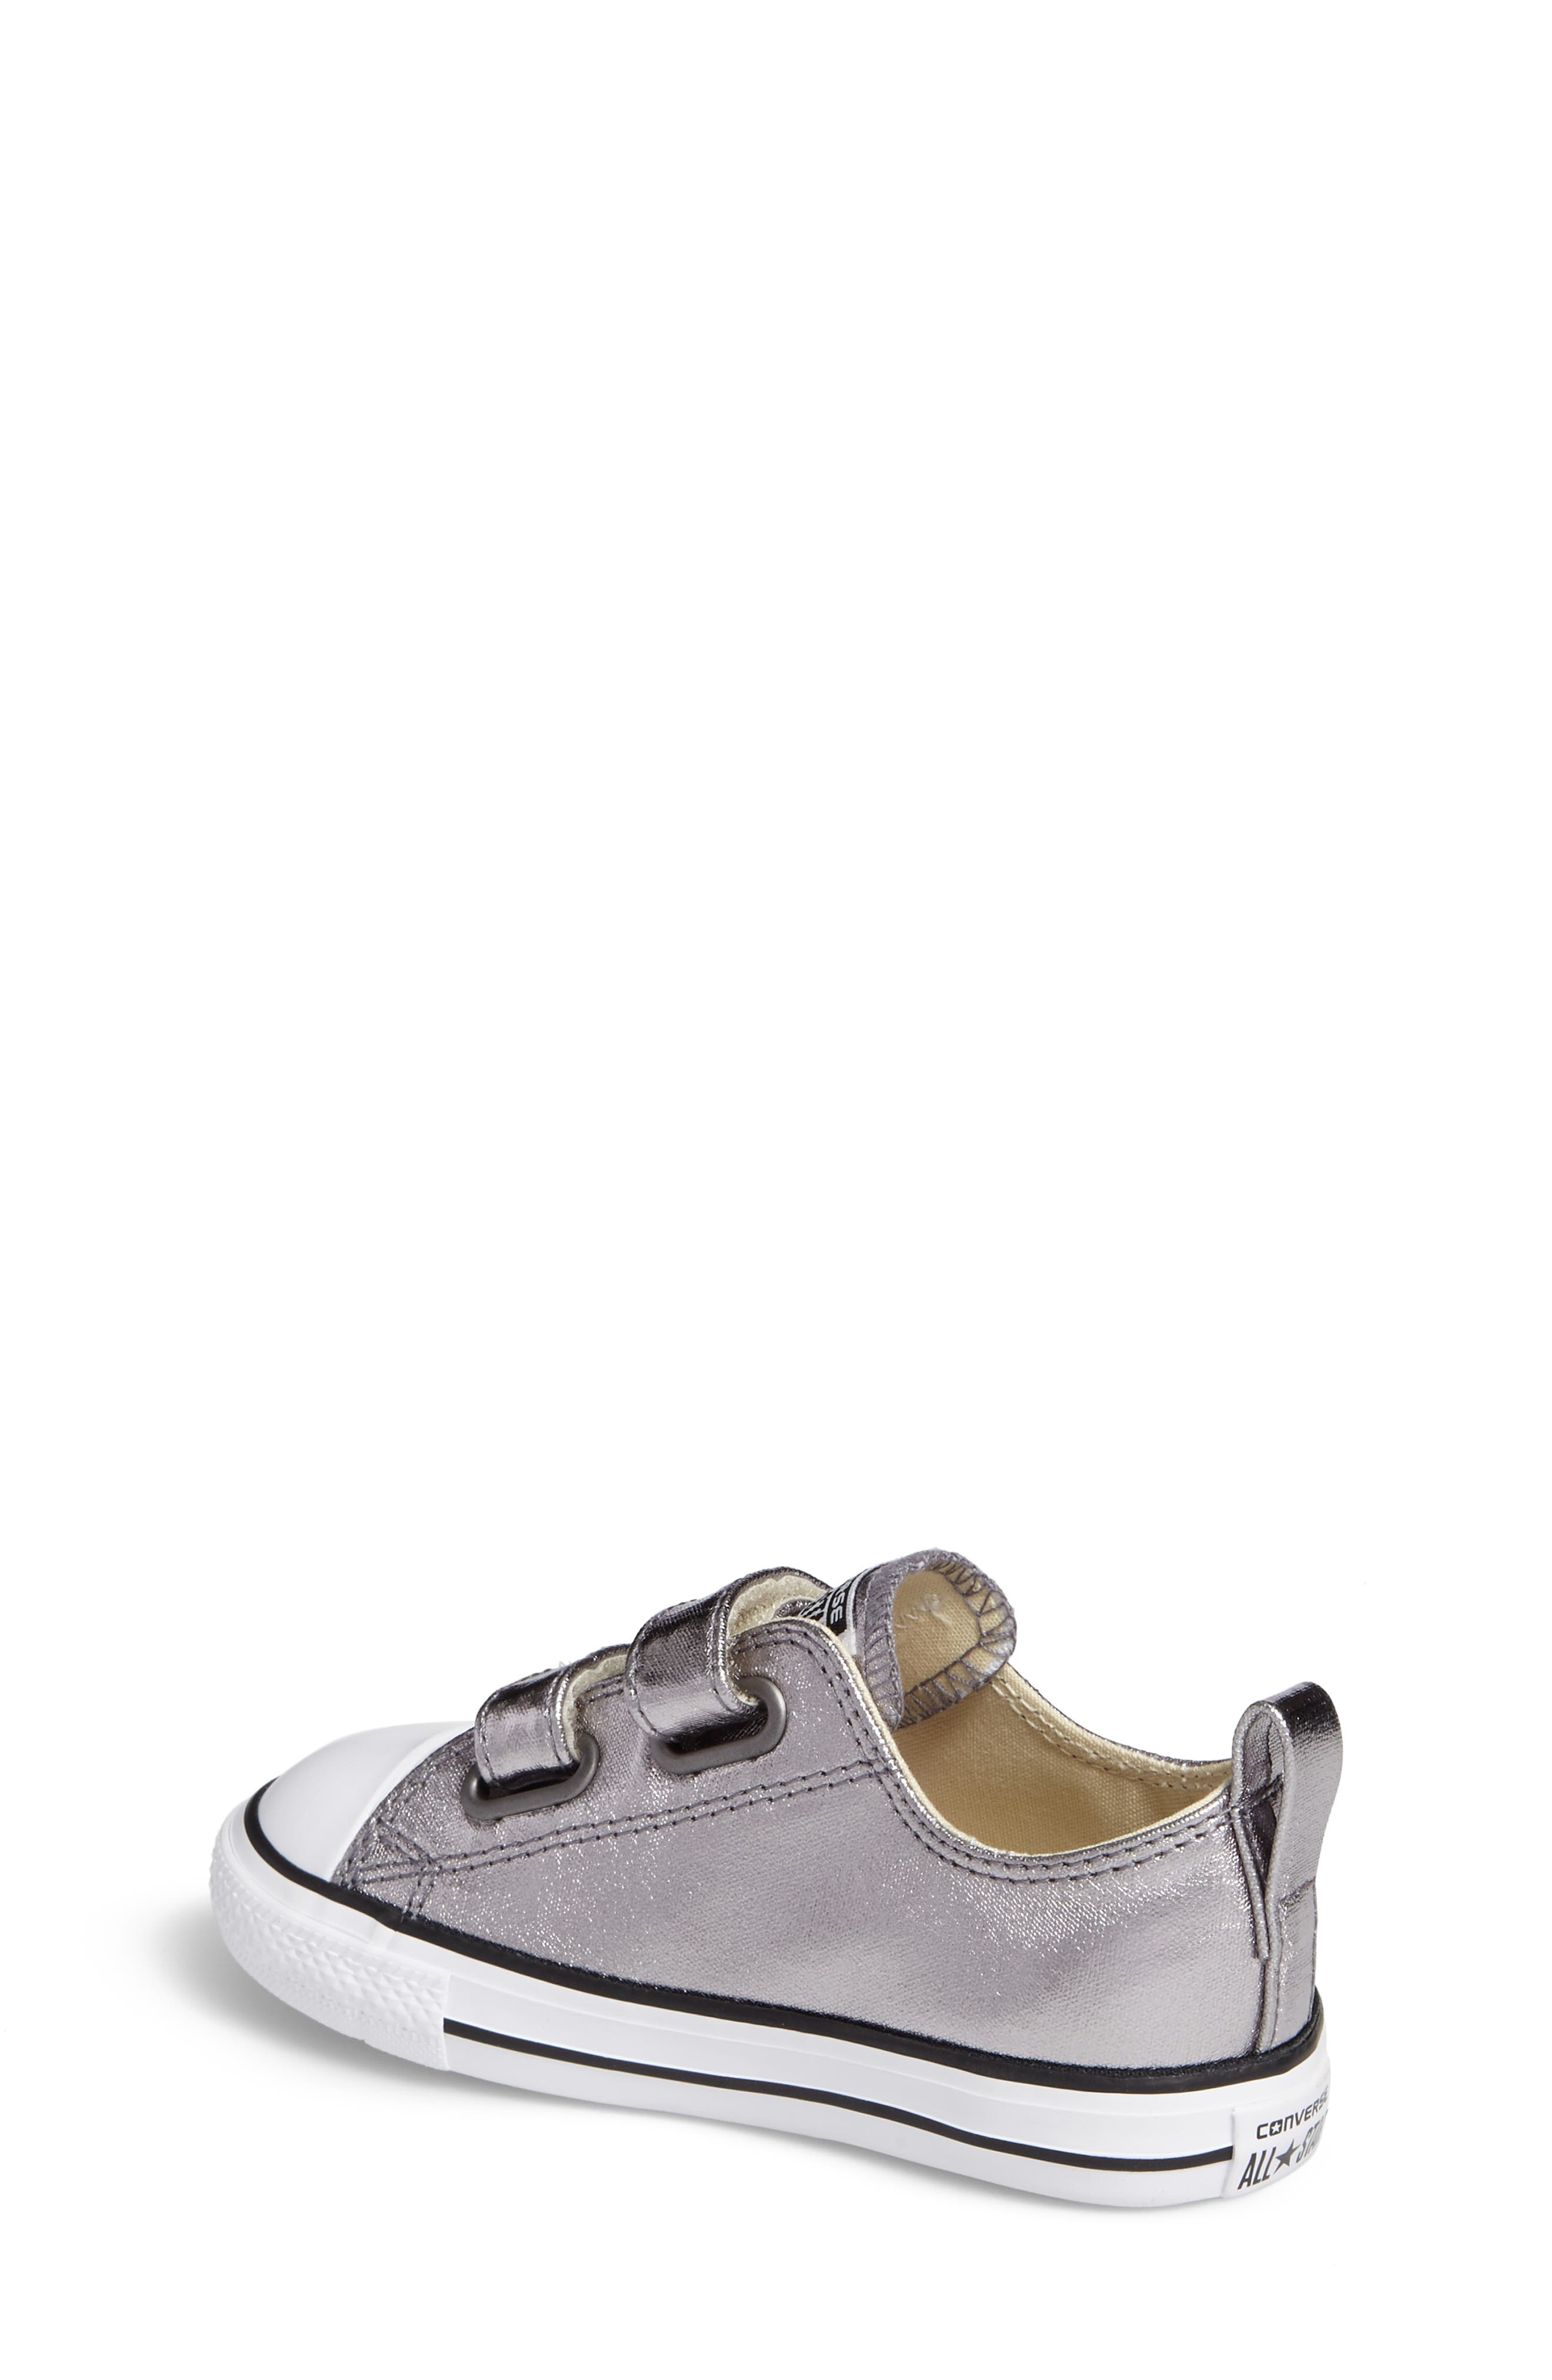 Alternate Image 2  - Converse Chuck Taylor® All Star® Seasonal Metallic Low Top Sneaker (Baby, Walker & Toddler)